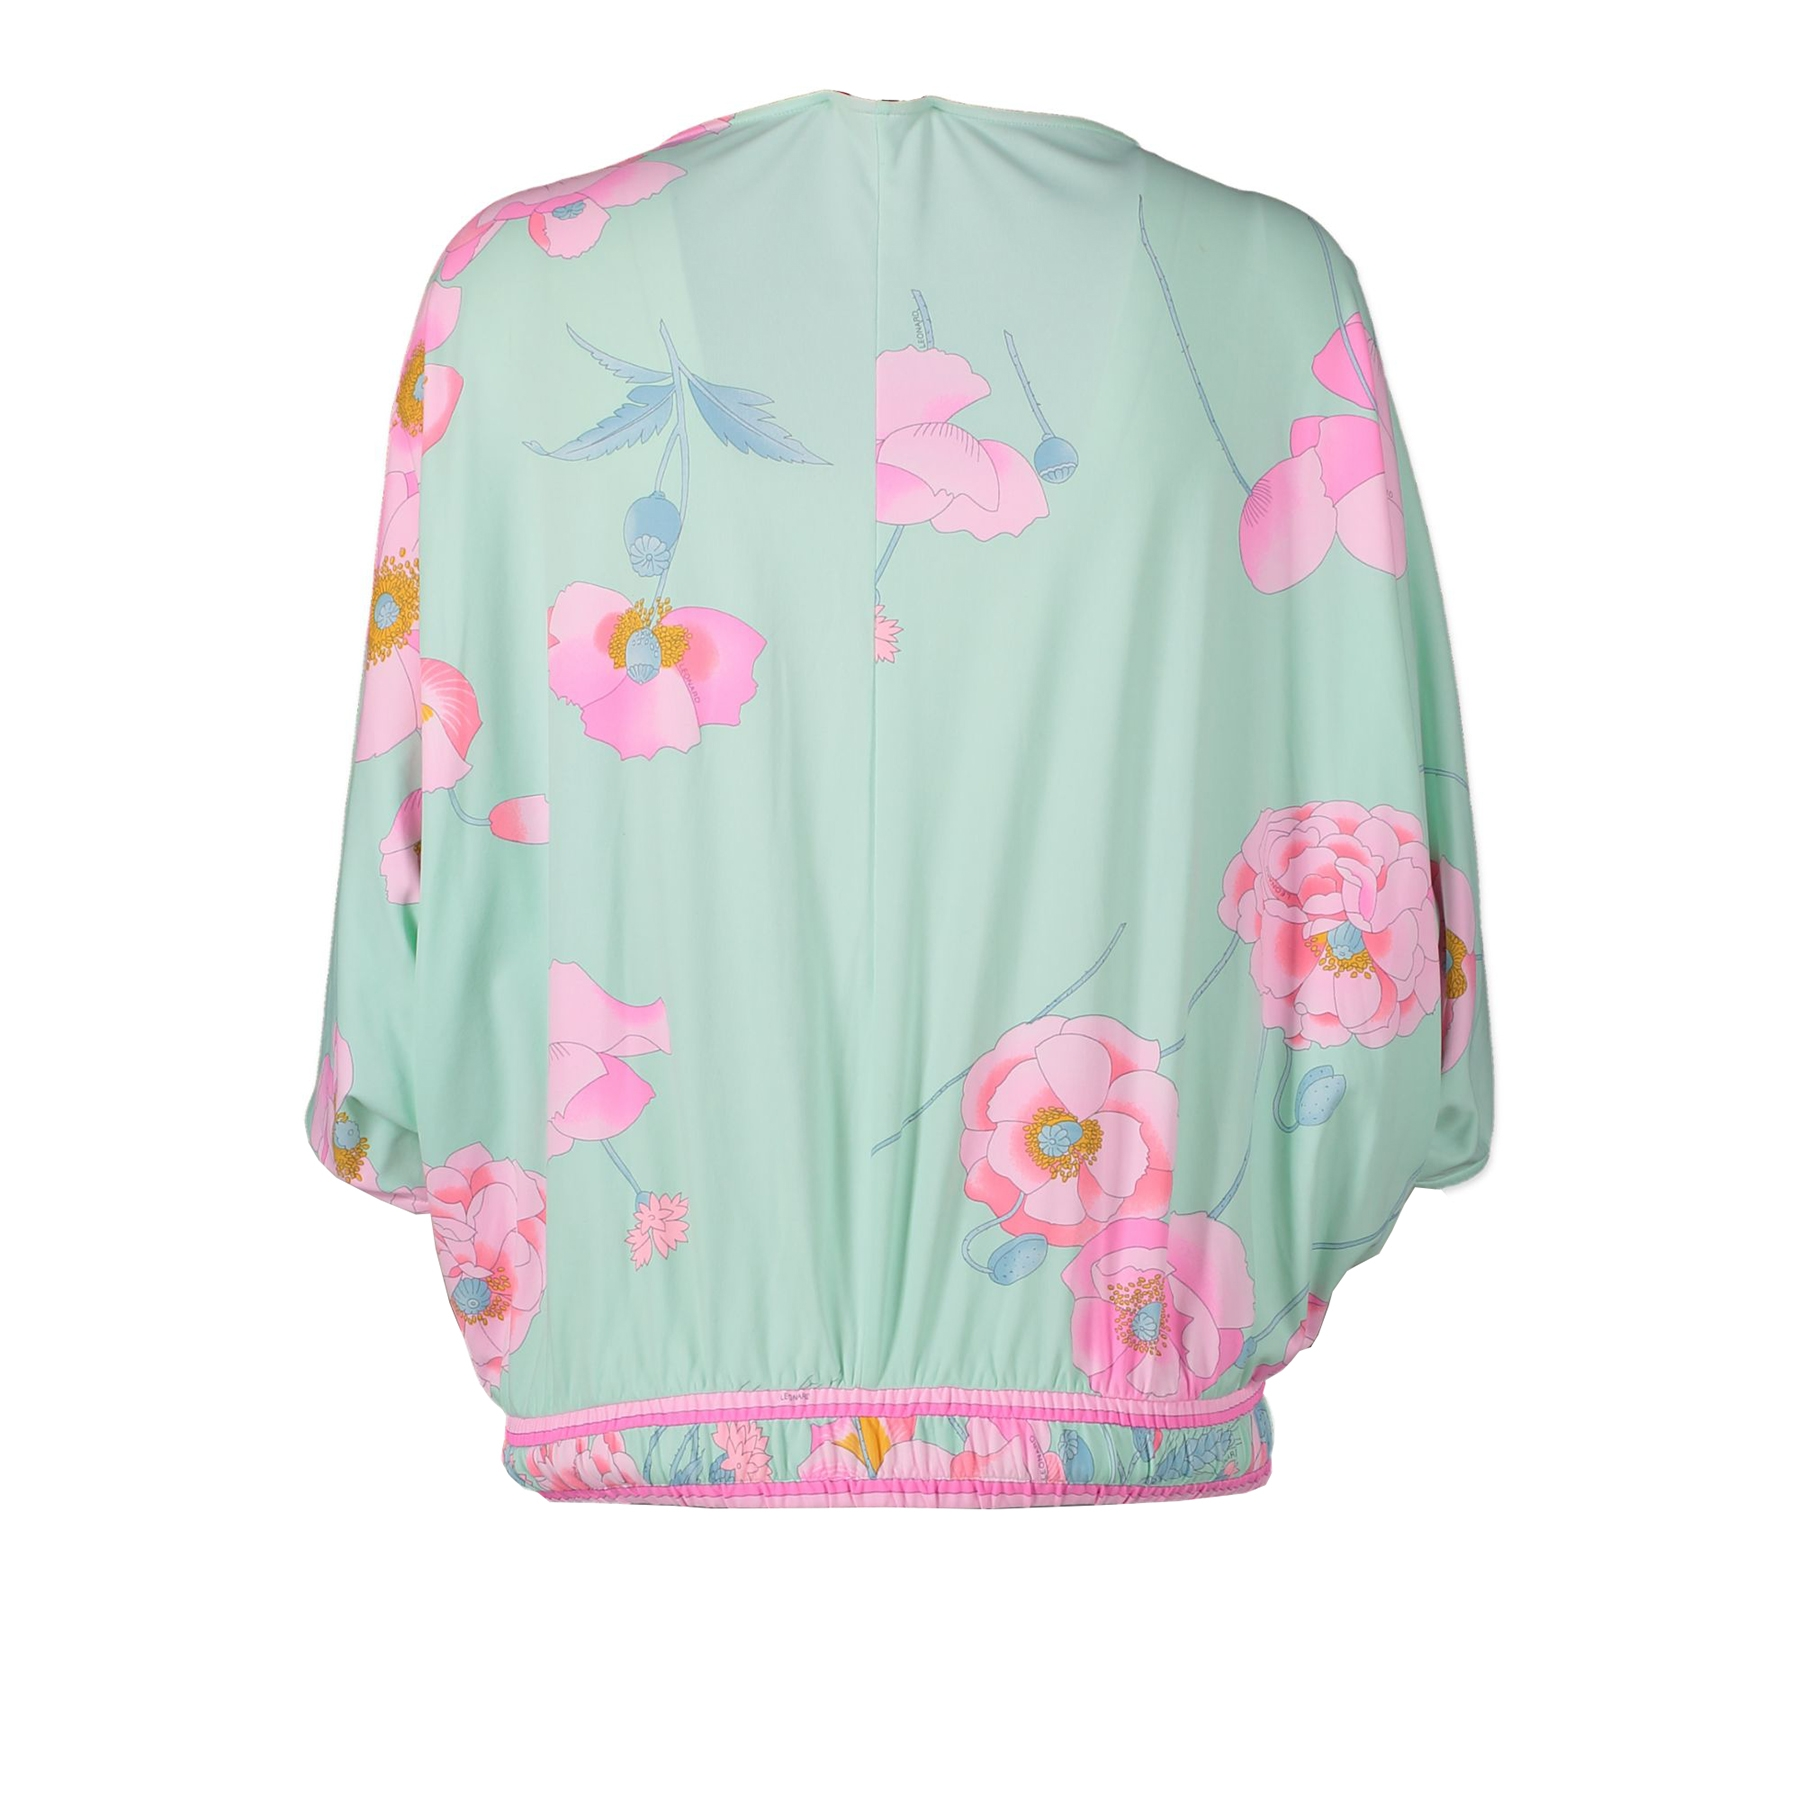 Leonard Green Floral Wrap Top - IT38 - for sale online